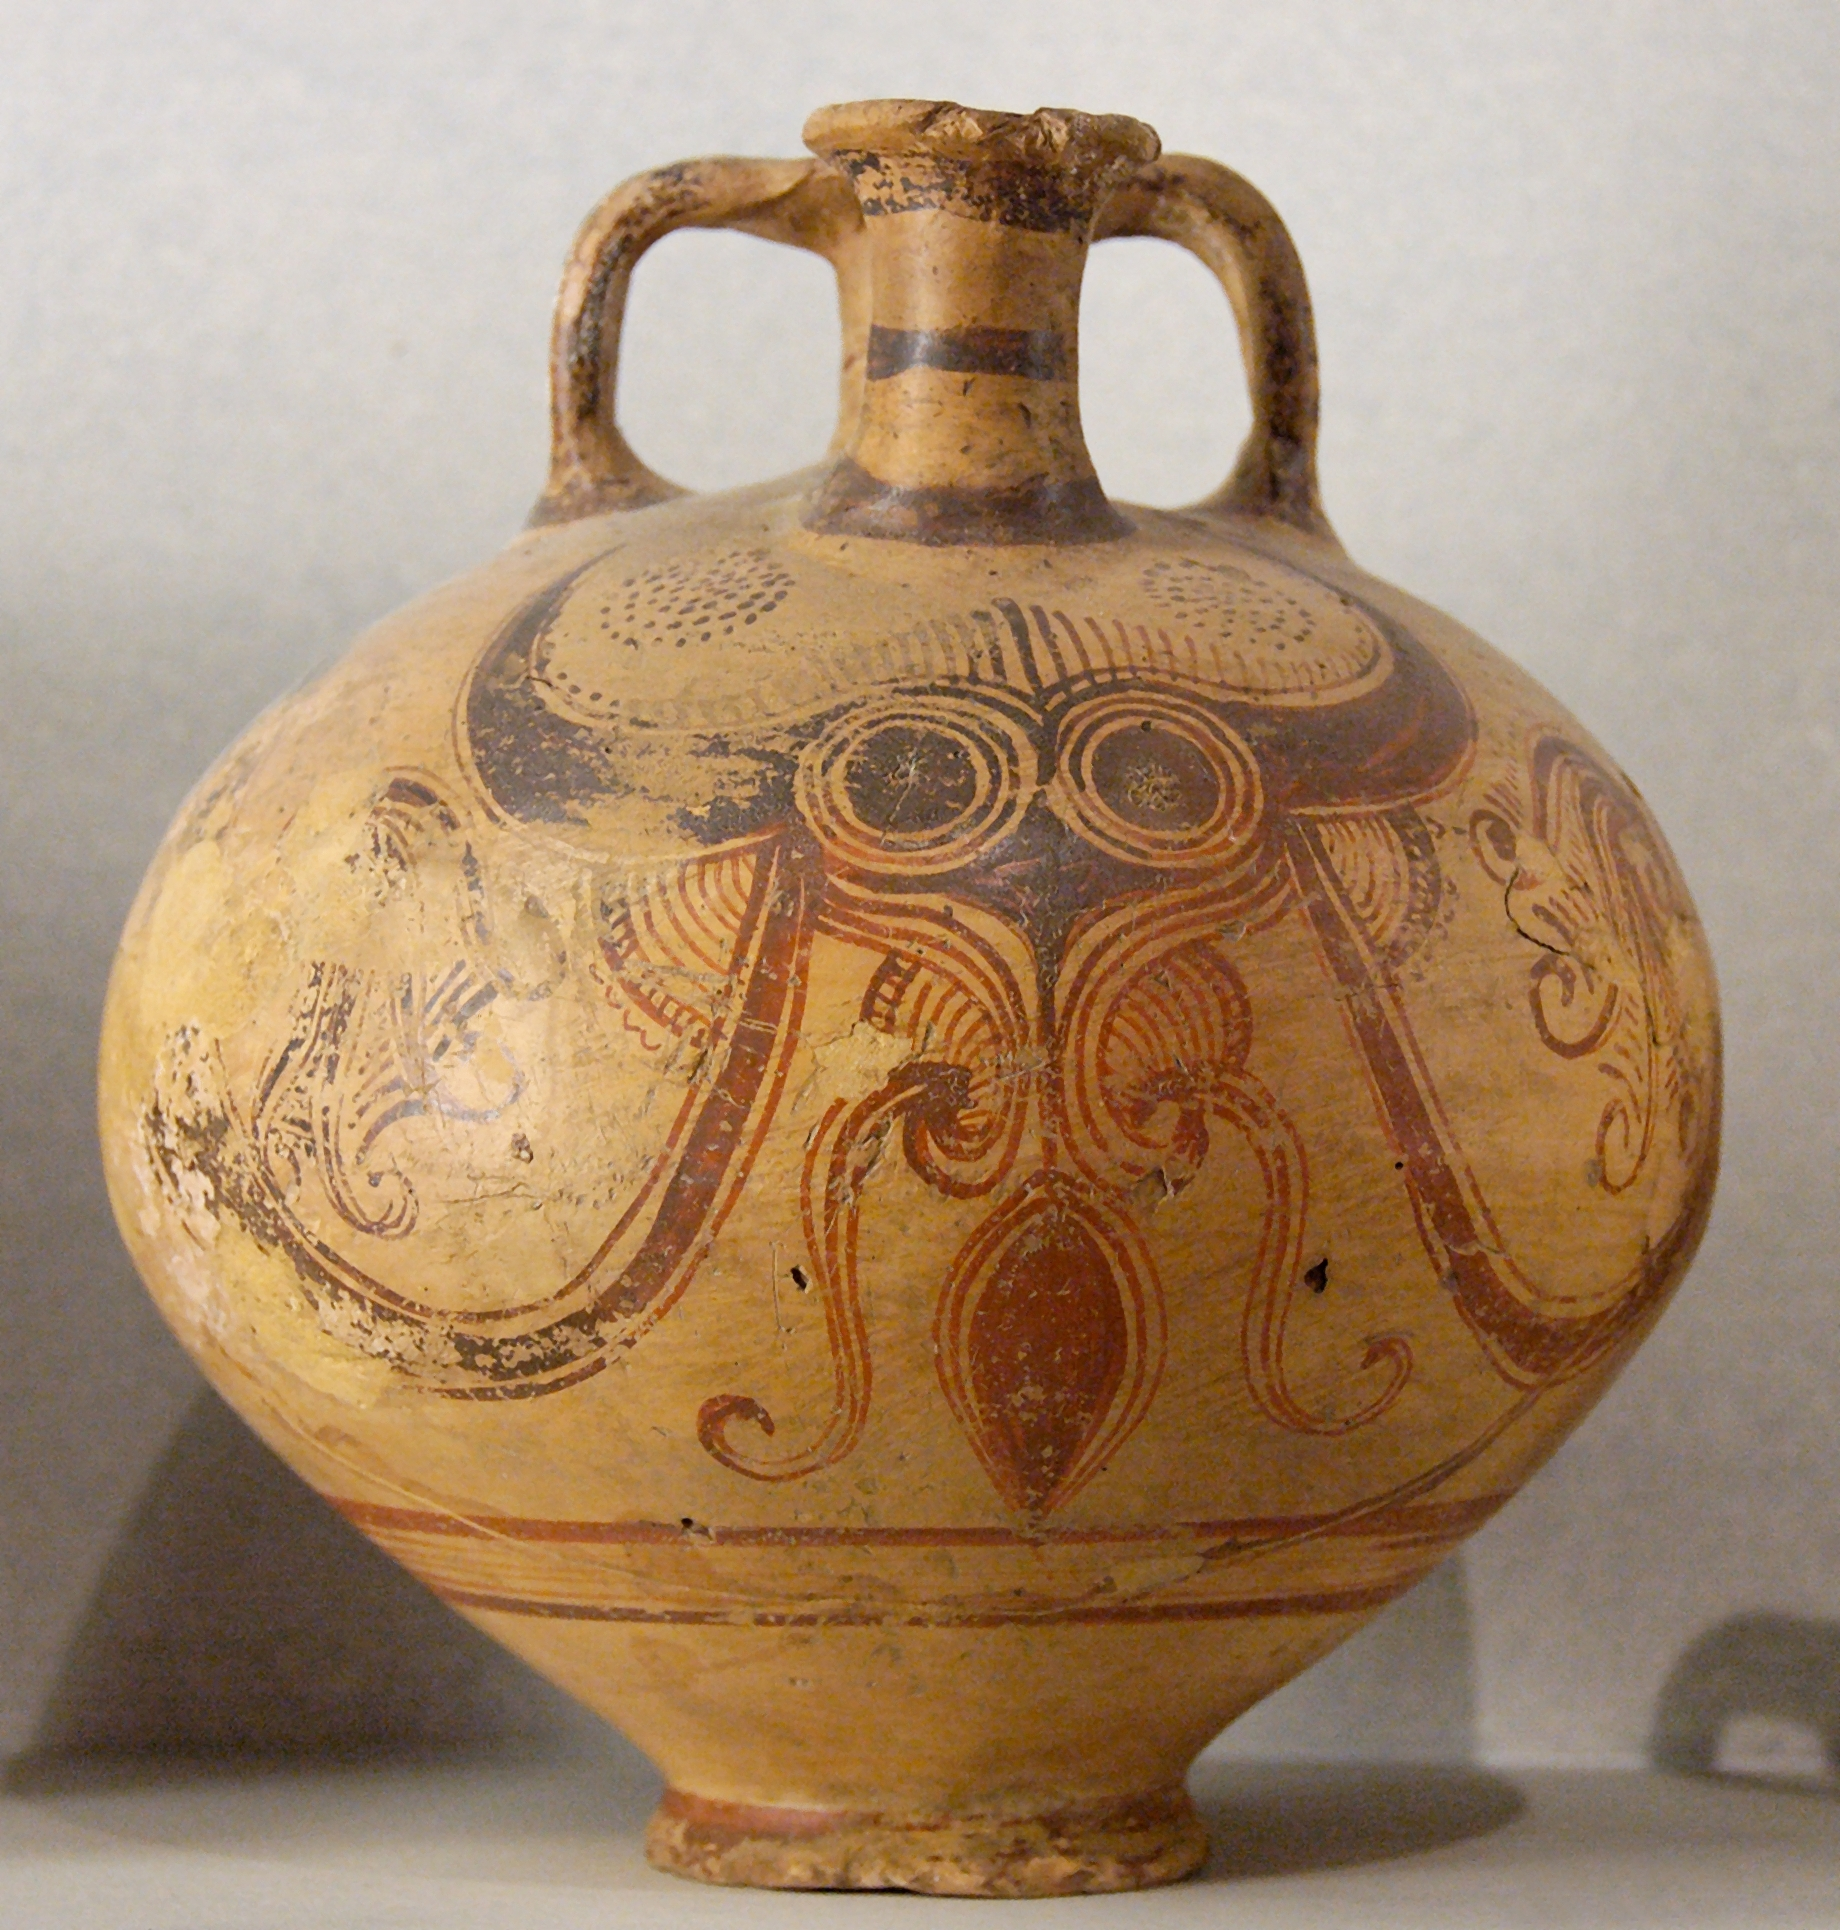 Helladic period wikipedia stirrup vase with octopus decor rhodes late helladic iii c1 ca 12001100 bc louvre reviewsmspy